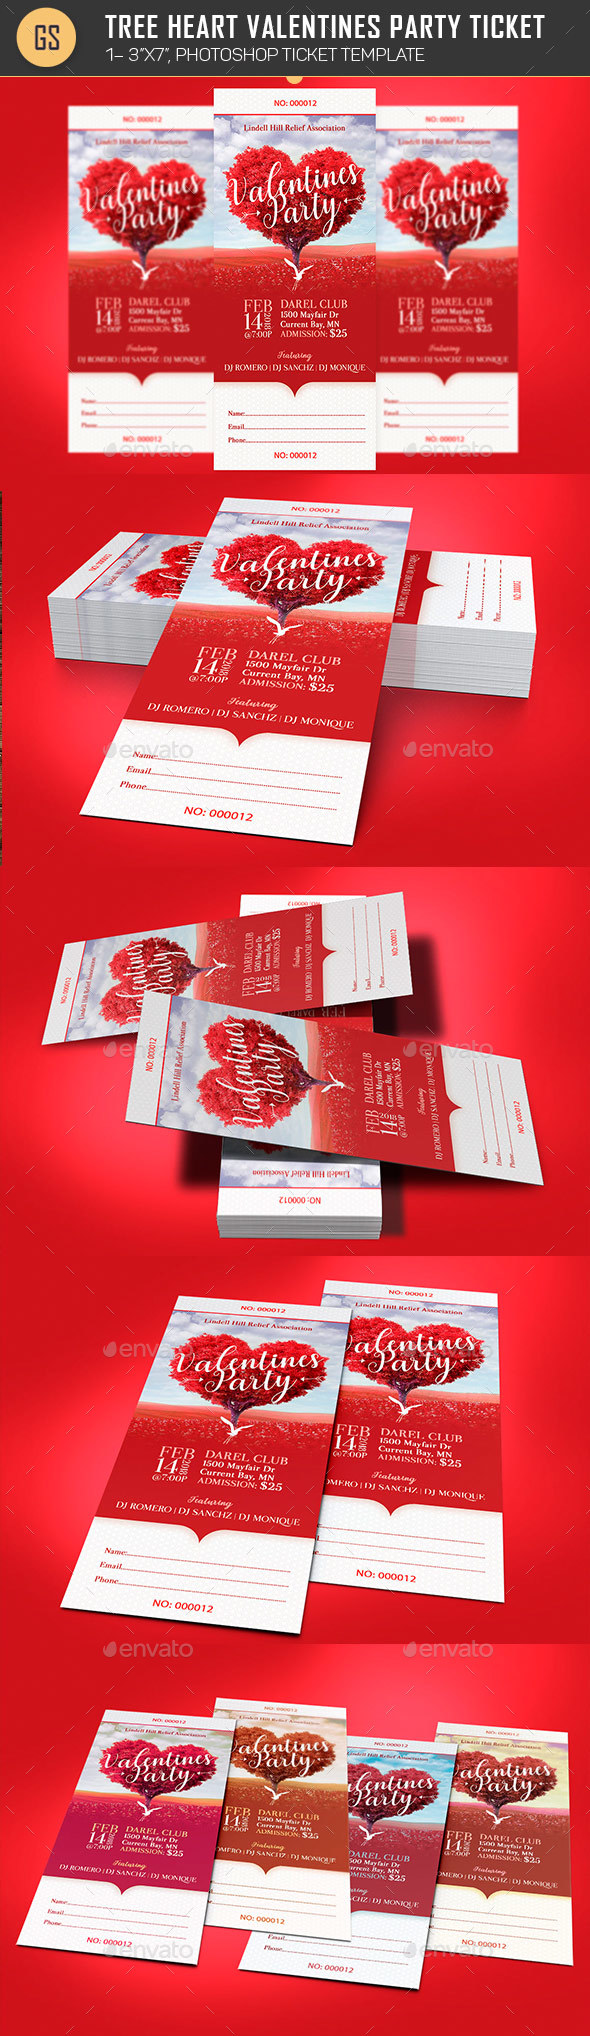 Tree Heart Valentines Party Ticket Template   Miscellaneous Print Templates  Party Ticket Template